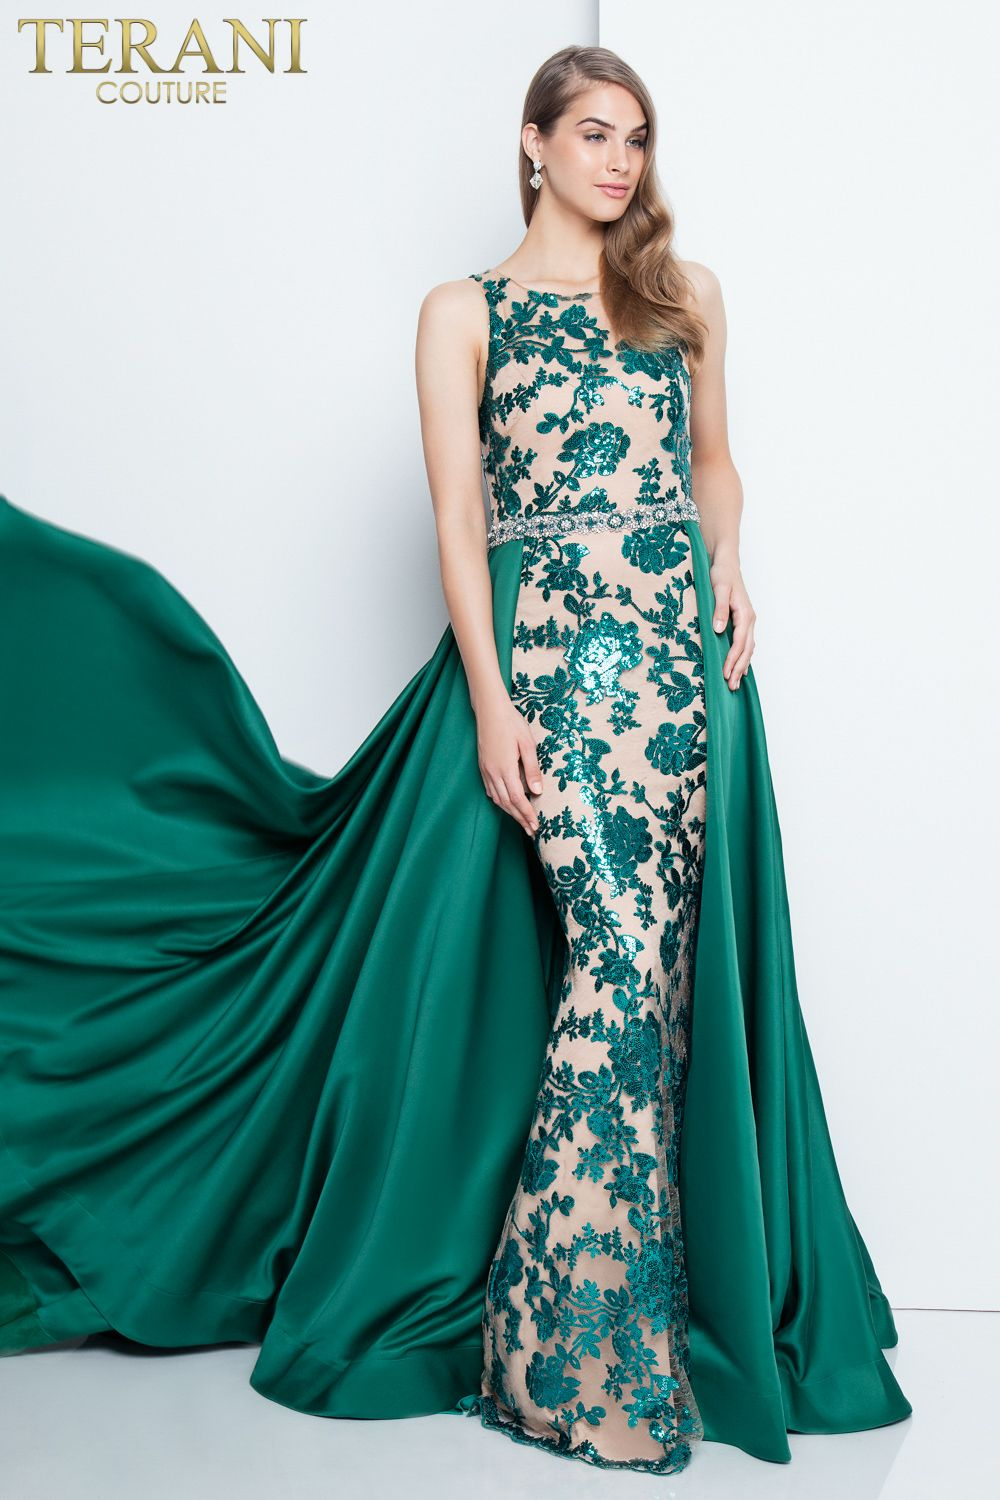 Terani Couture Emerald Green Lace fitted dress with green cape Red ...